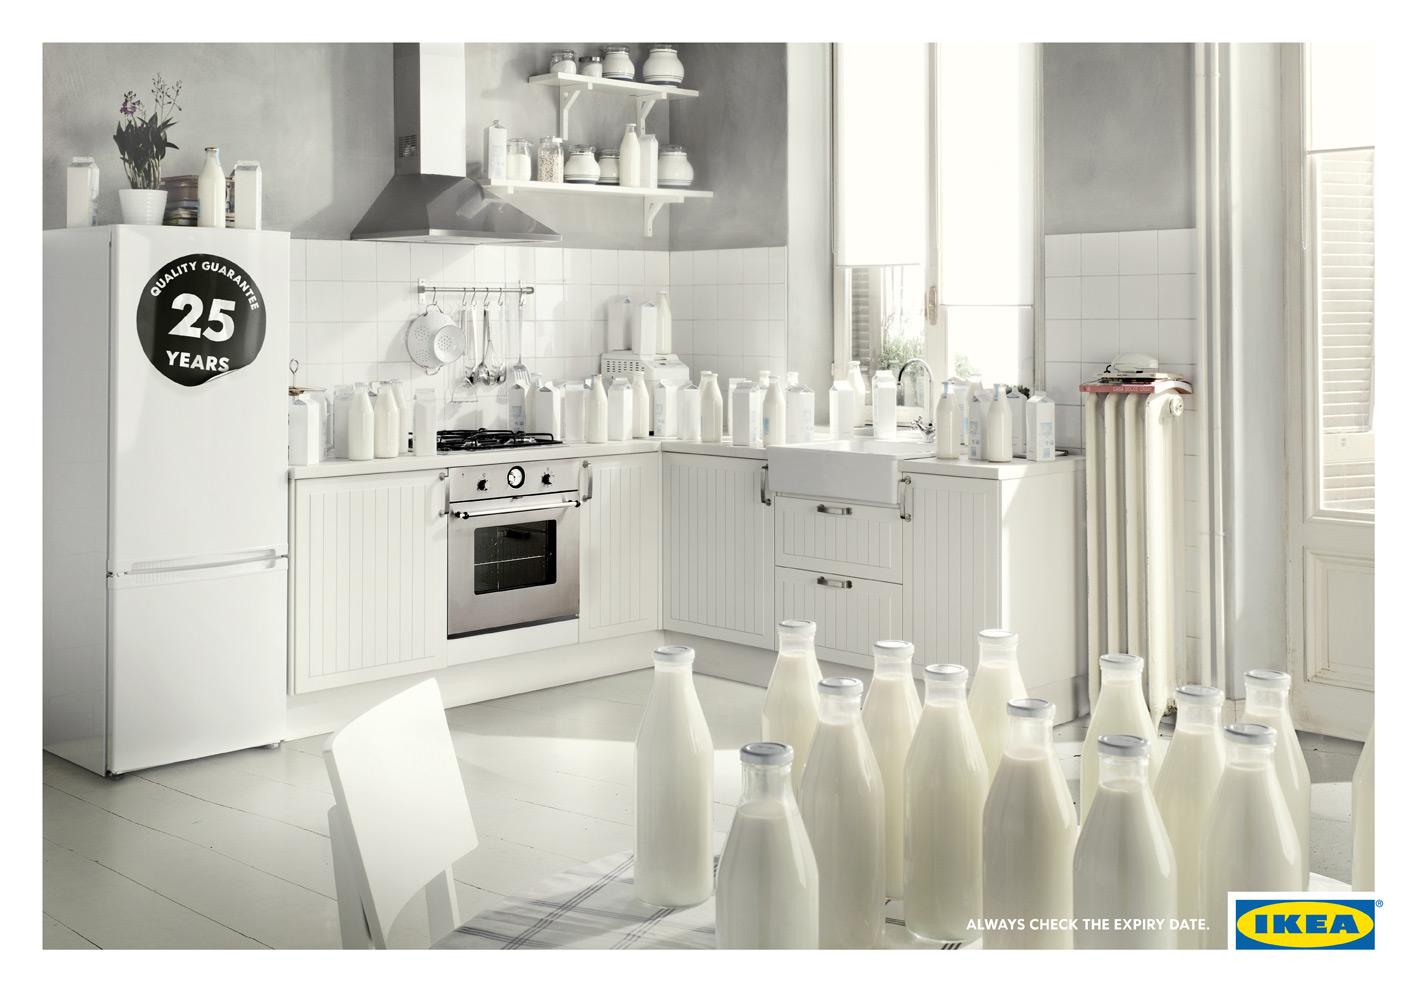 IKEA Print Advert By 1861 United: Always check the expiry date ...